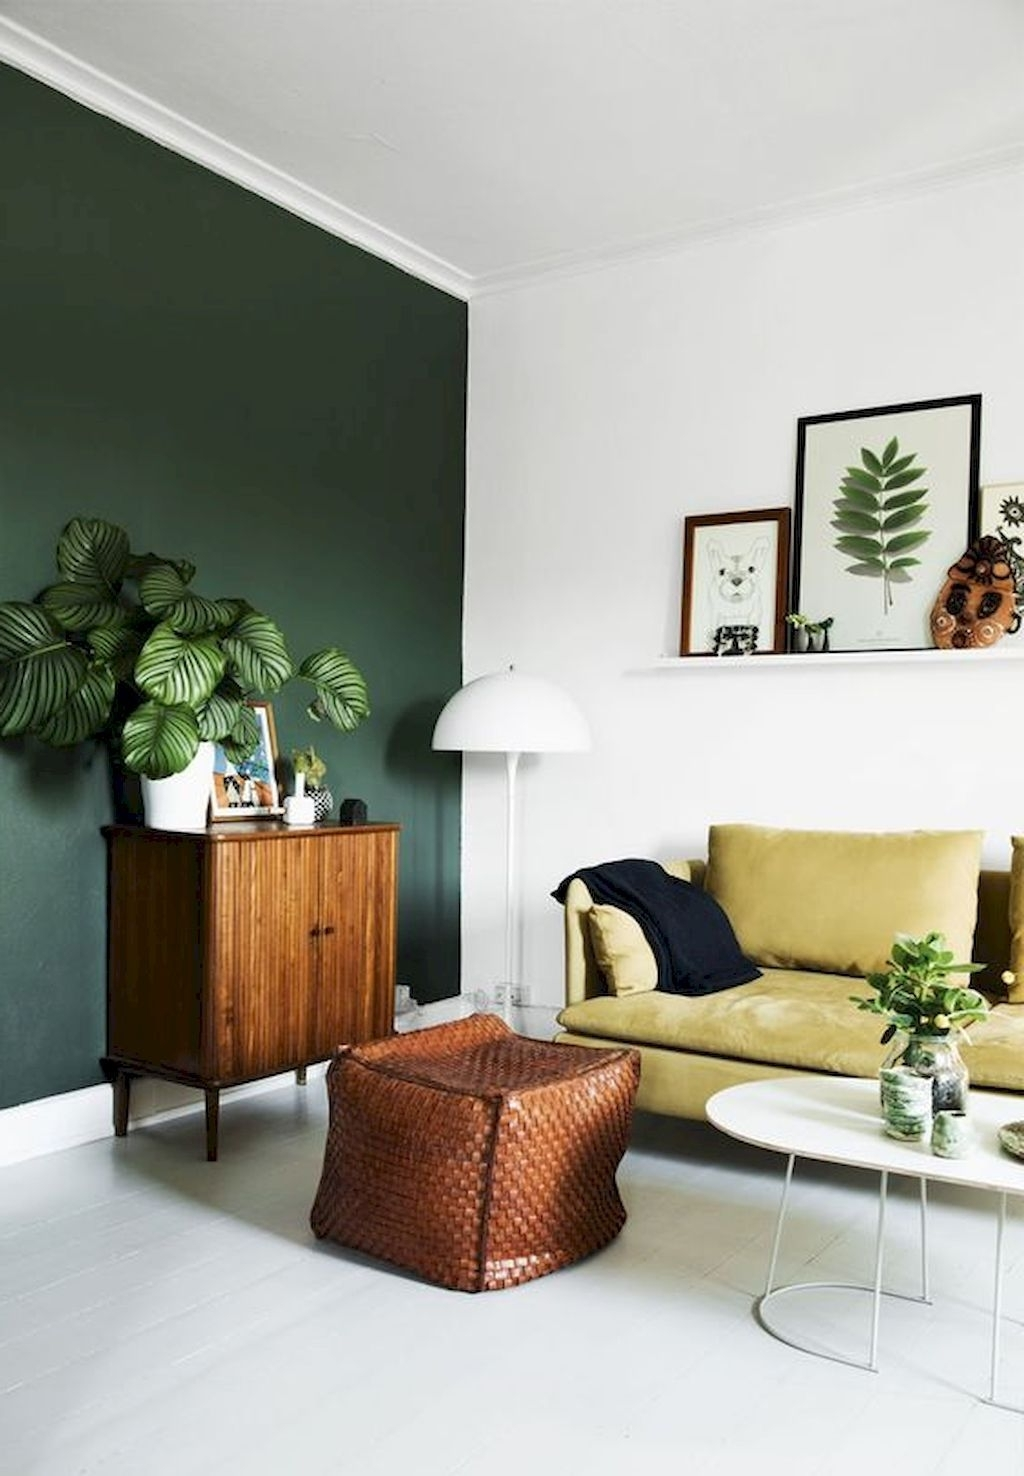 Green Living Room Designs: 15 Photos Green Wall Accents